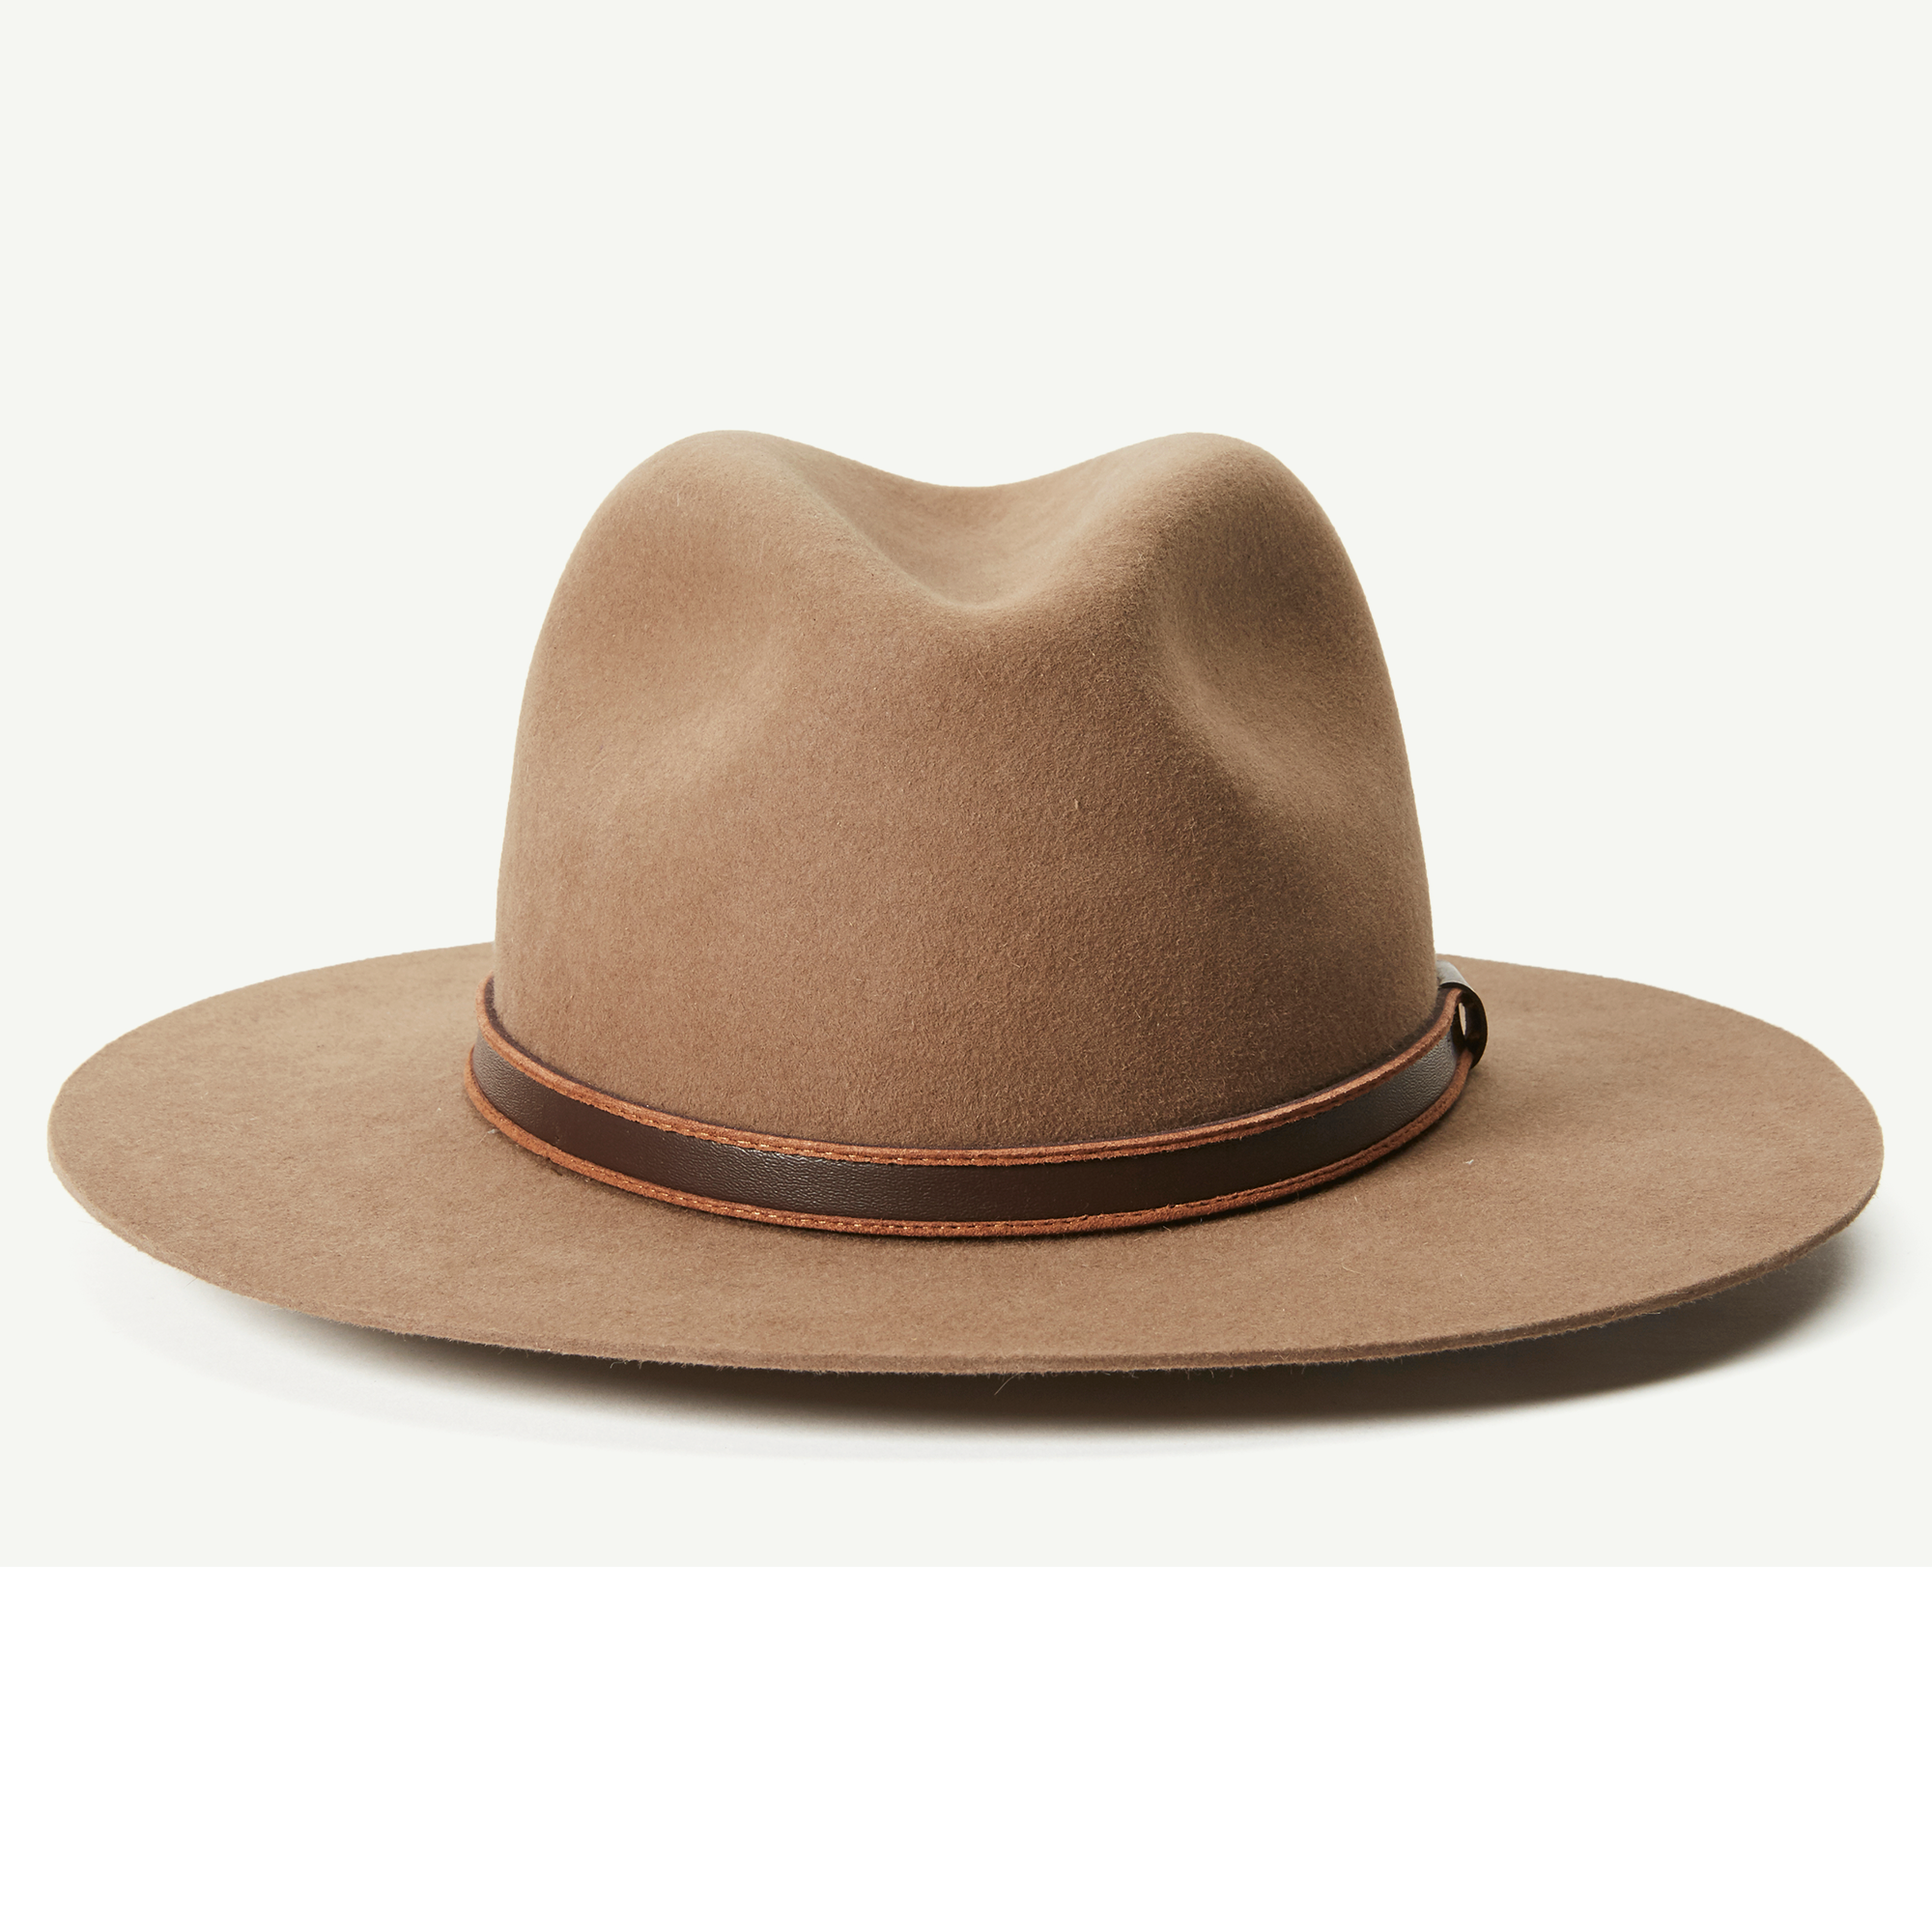 ... brim made in America by Goorin Bros. Big Tex Tan Rabbit Fur Felt  A-Crown Fedora hat front view 5bc1f1e3db5a